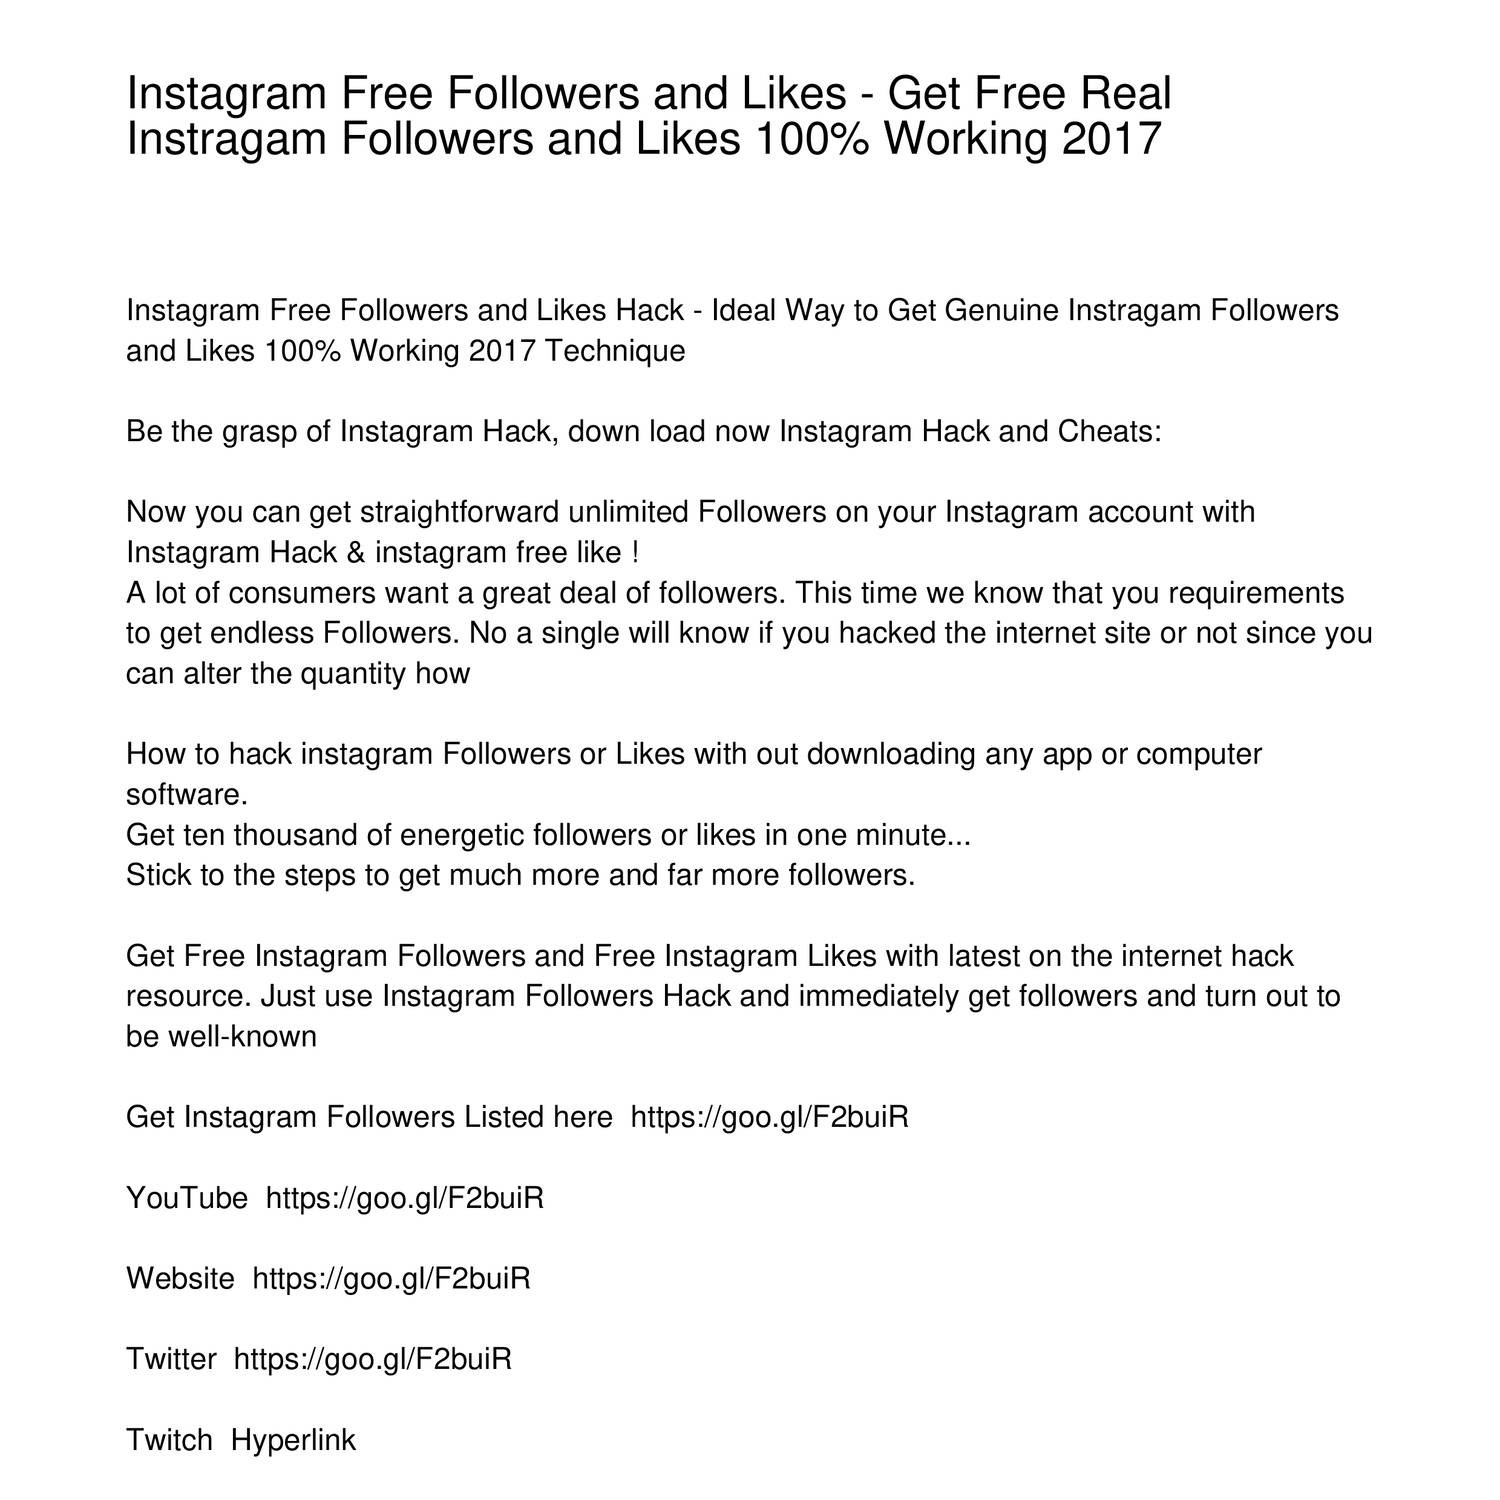 Instagram Free Followers and Likes Get Free Real Instragam